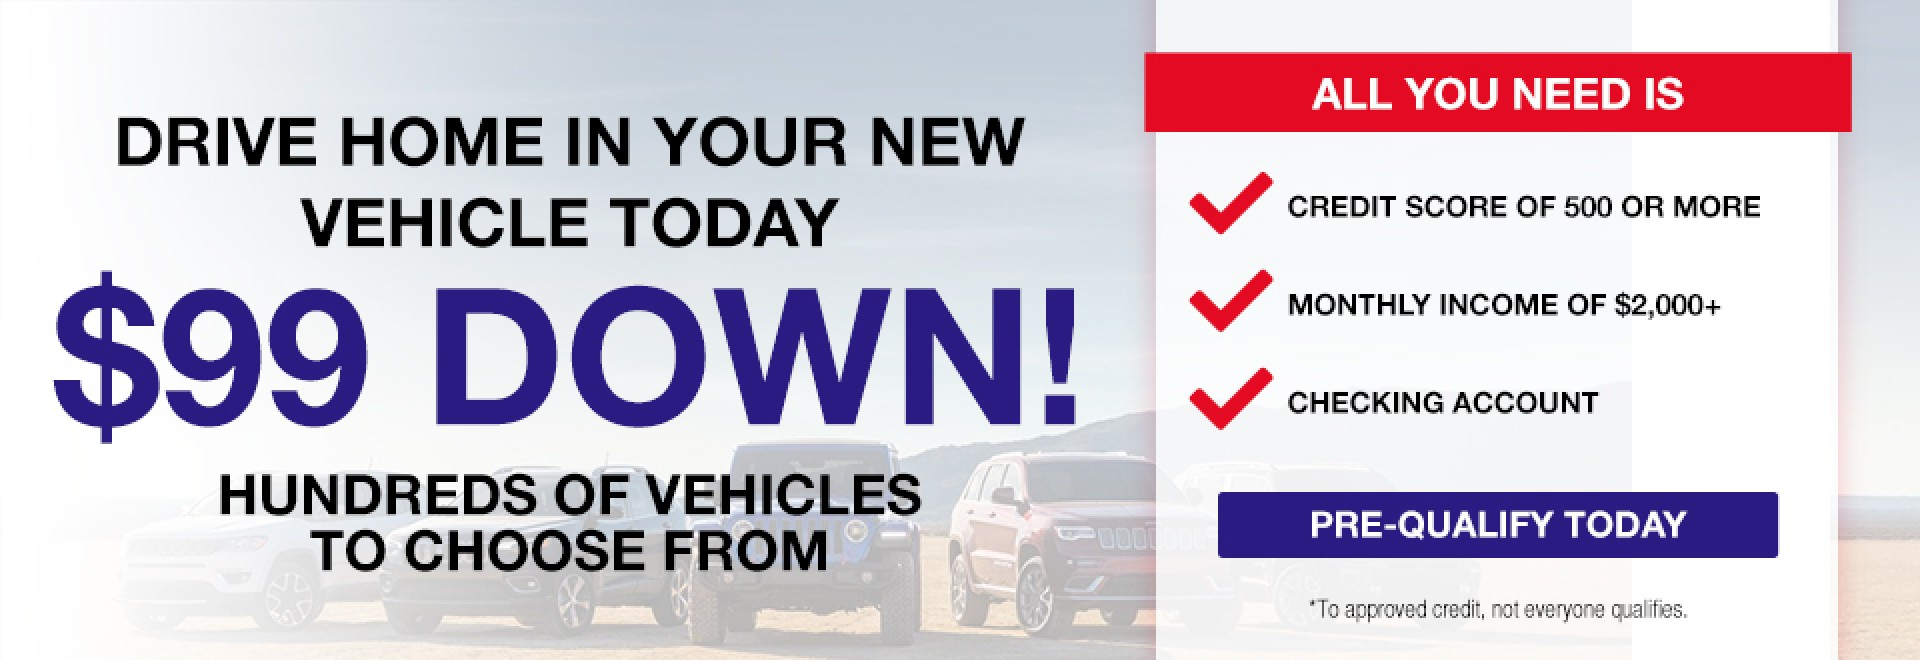 Drive Home in your new vehicle today $99 down hundred of vehicles to choose from